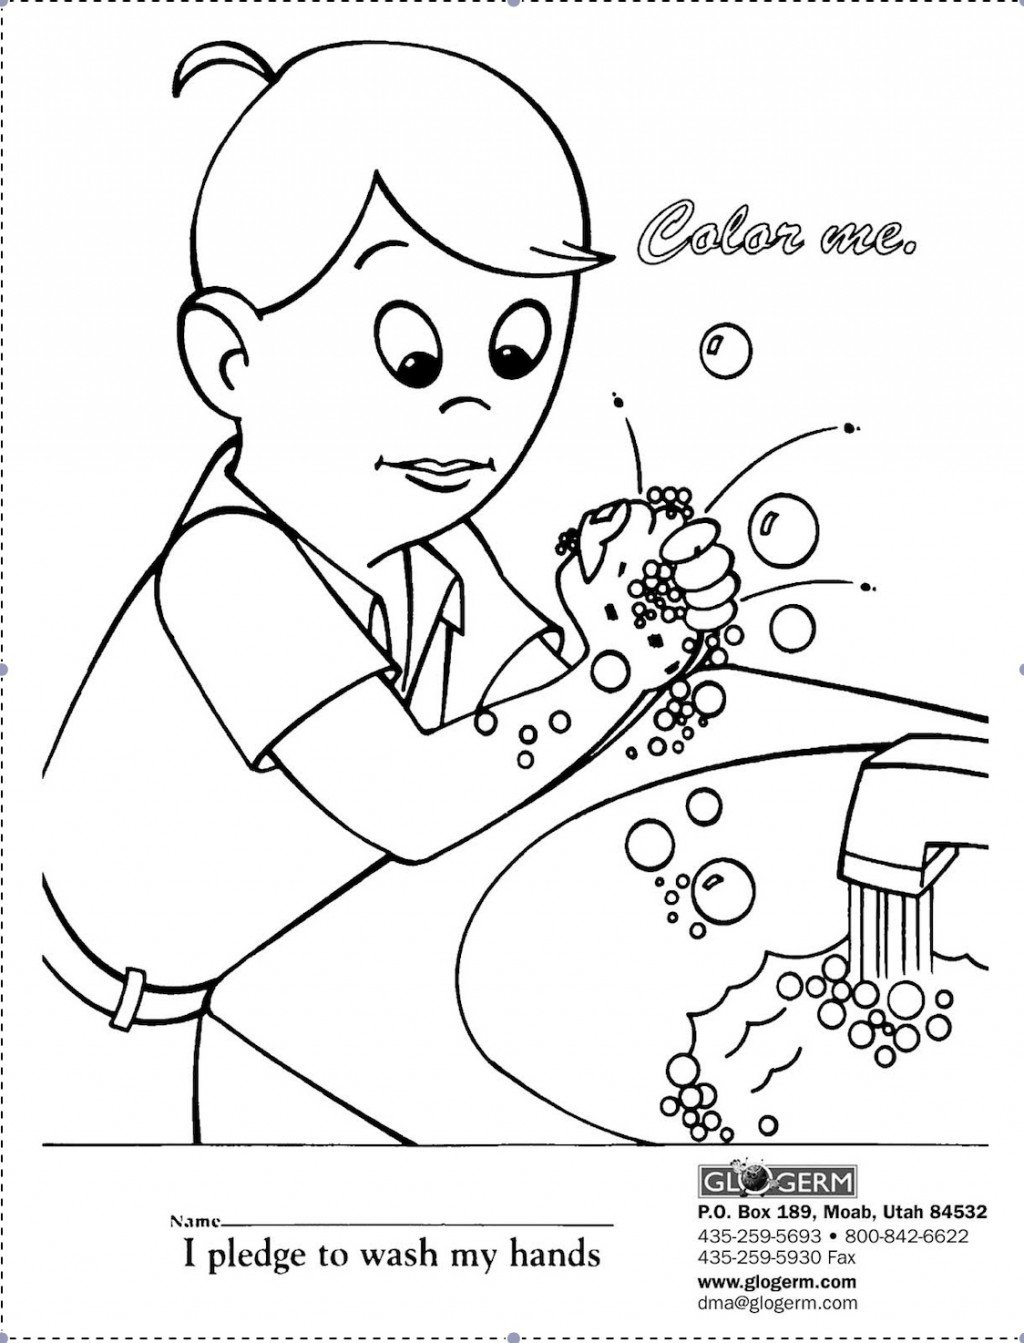 germ coloring sheet kid color pages sick day and spreading germs sheet coloring germ